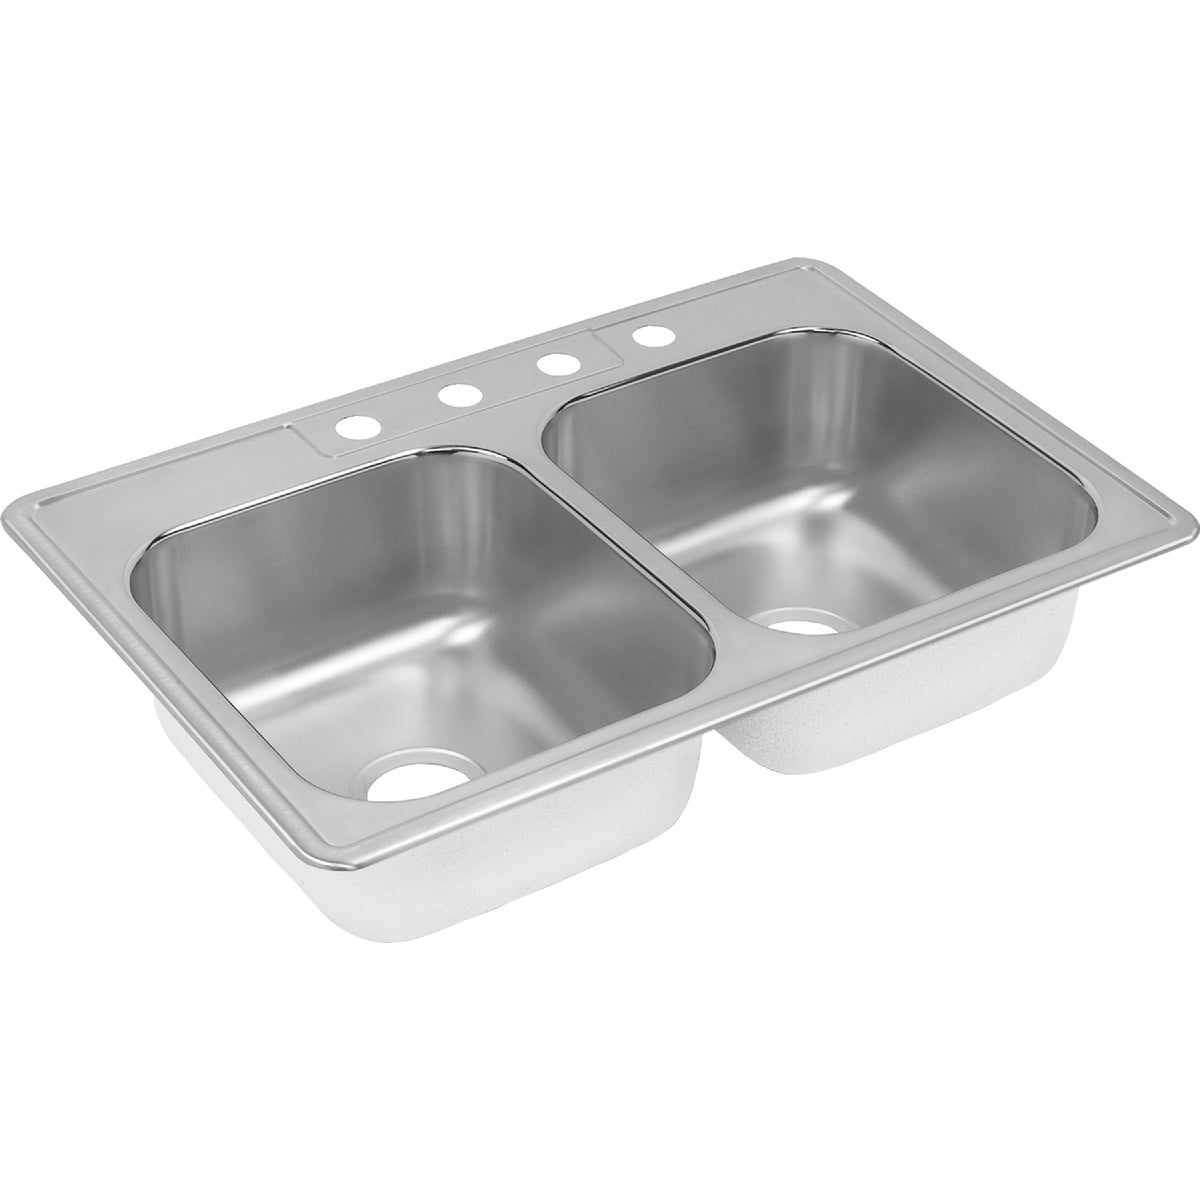 "8"" SS DOUBLE-BOWL SINK - NLX33224 by Elkay Neptune"